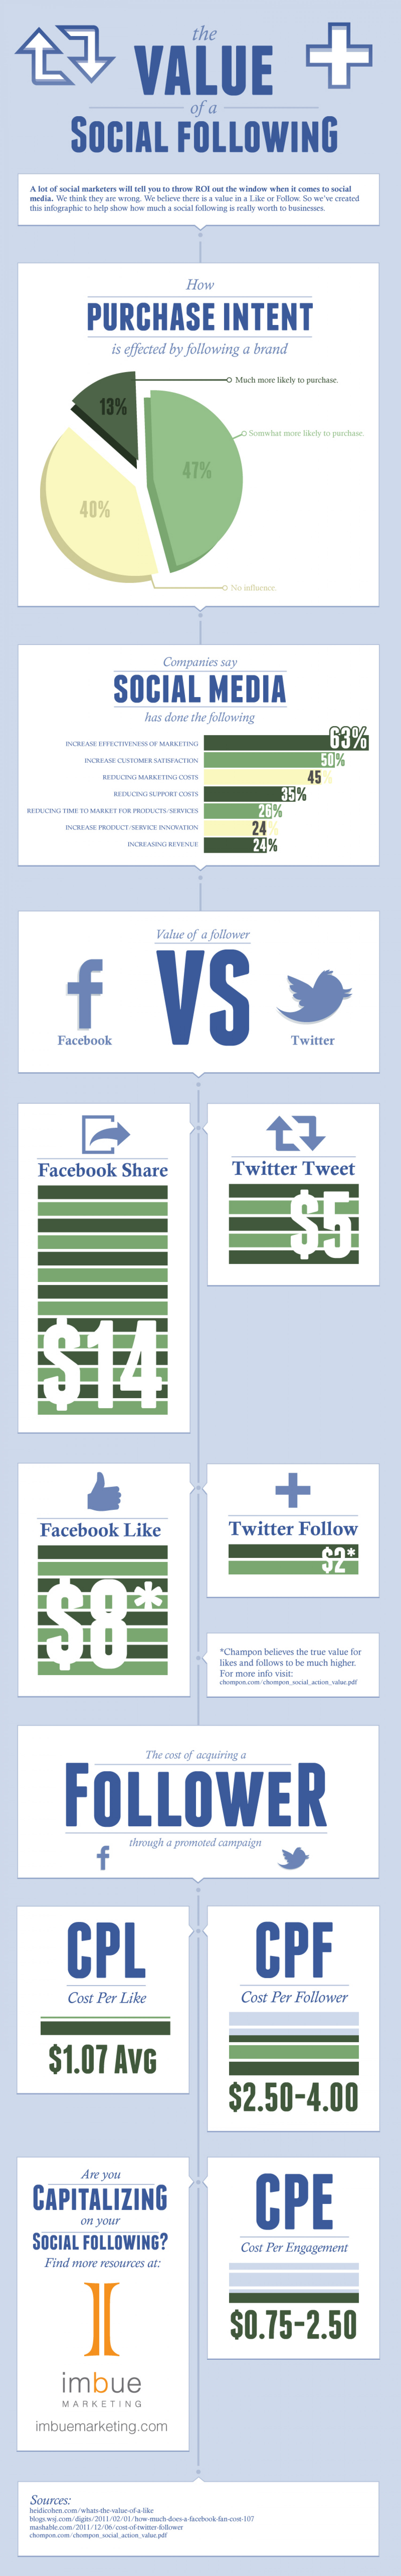 The Value of a Social Following Infographic